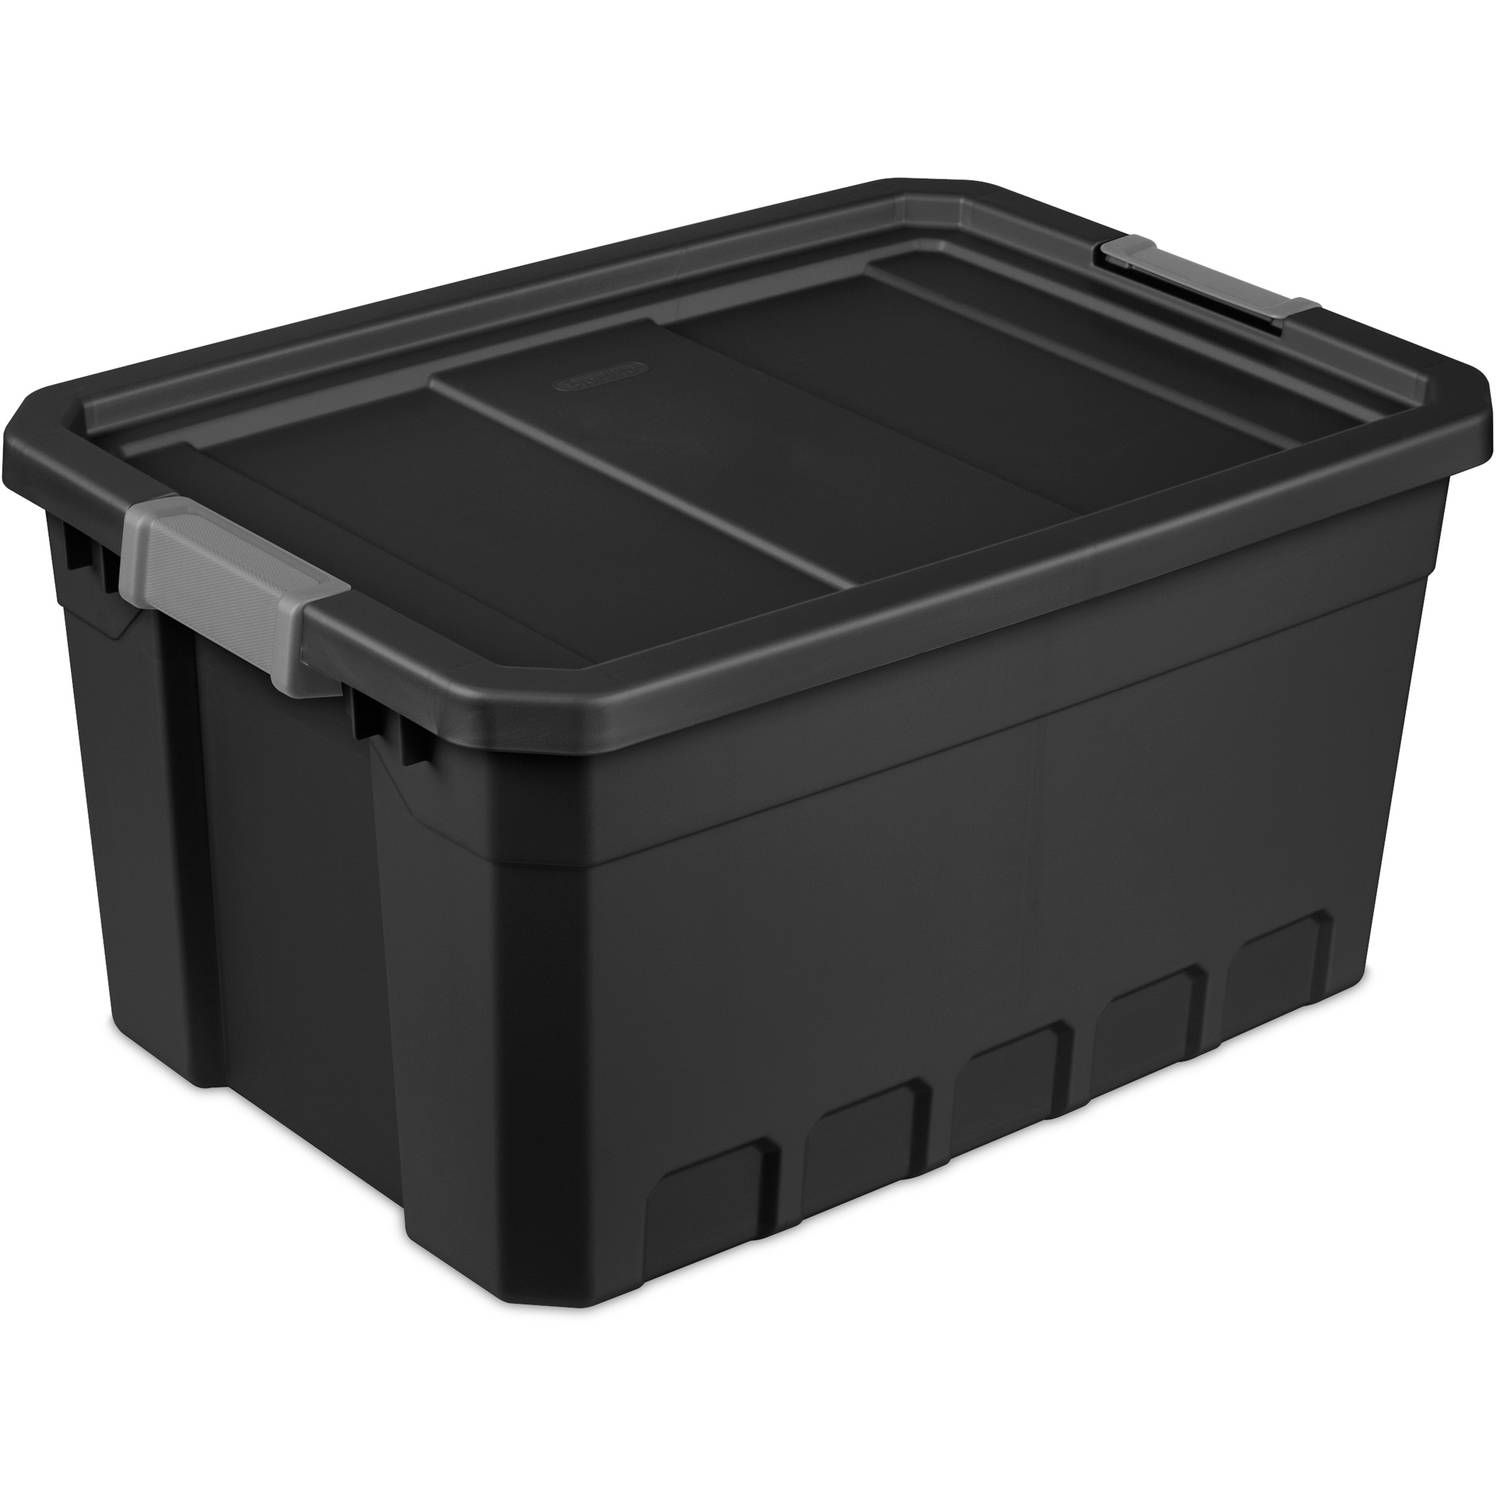 Sterilite 19 Gallon Stacker Tote- Black, Case of 6